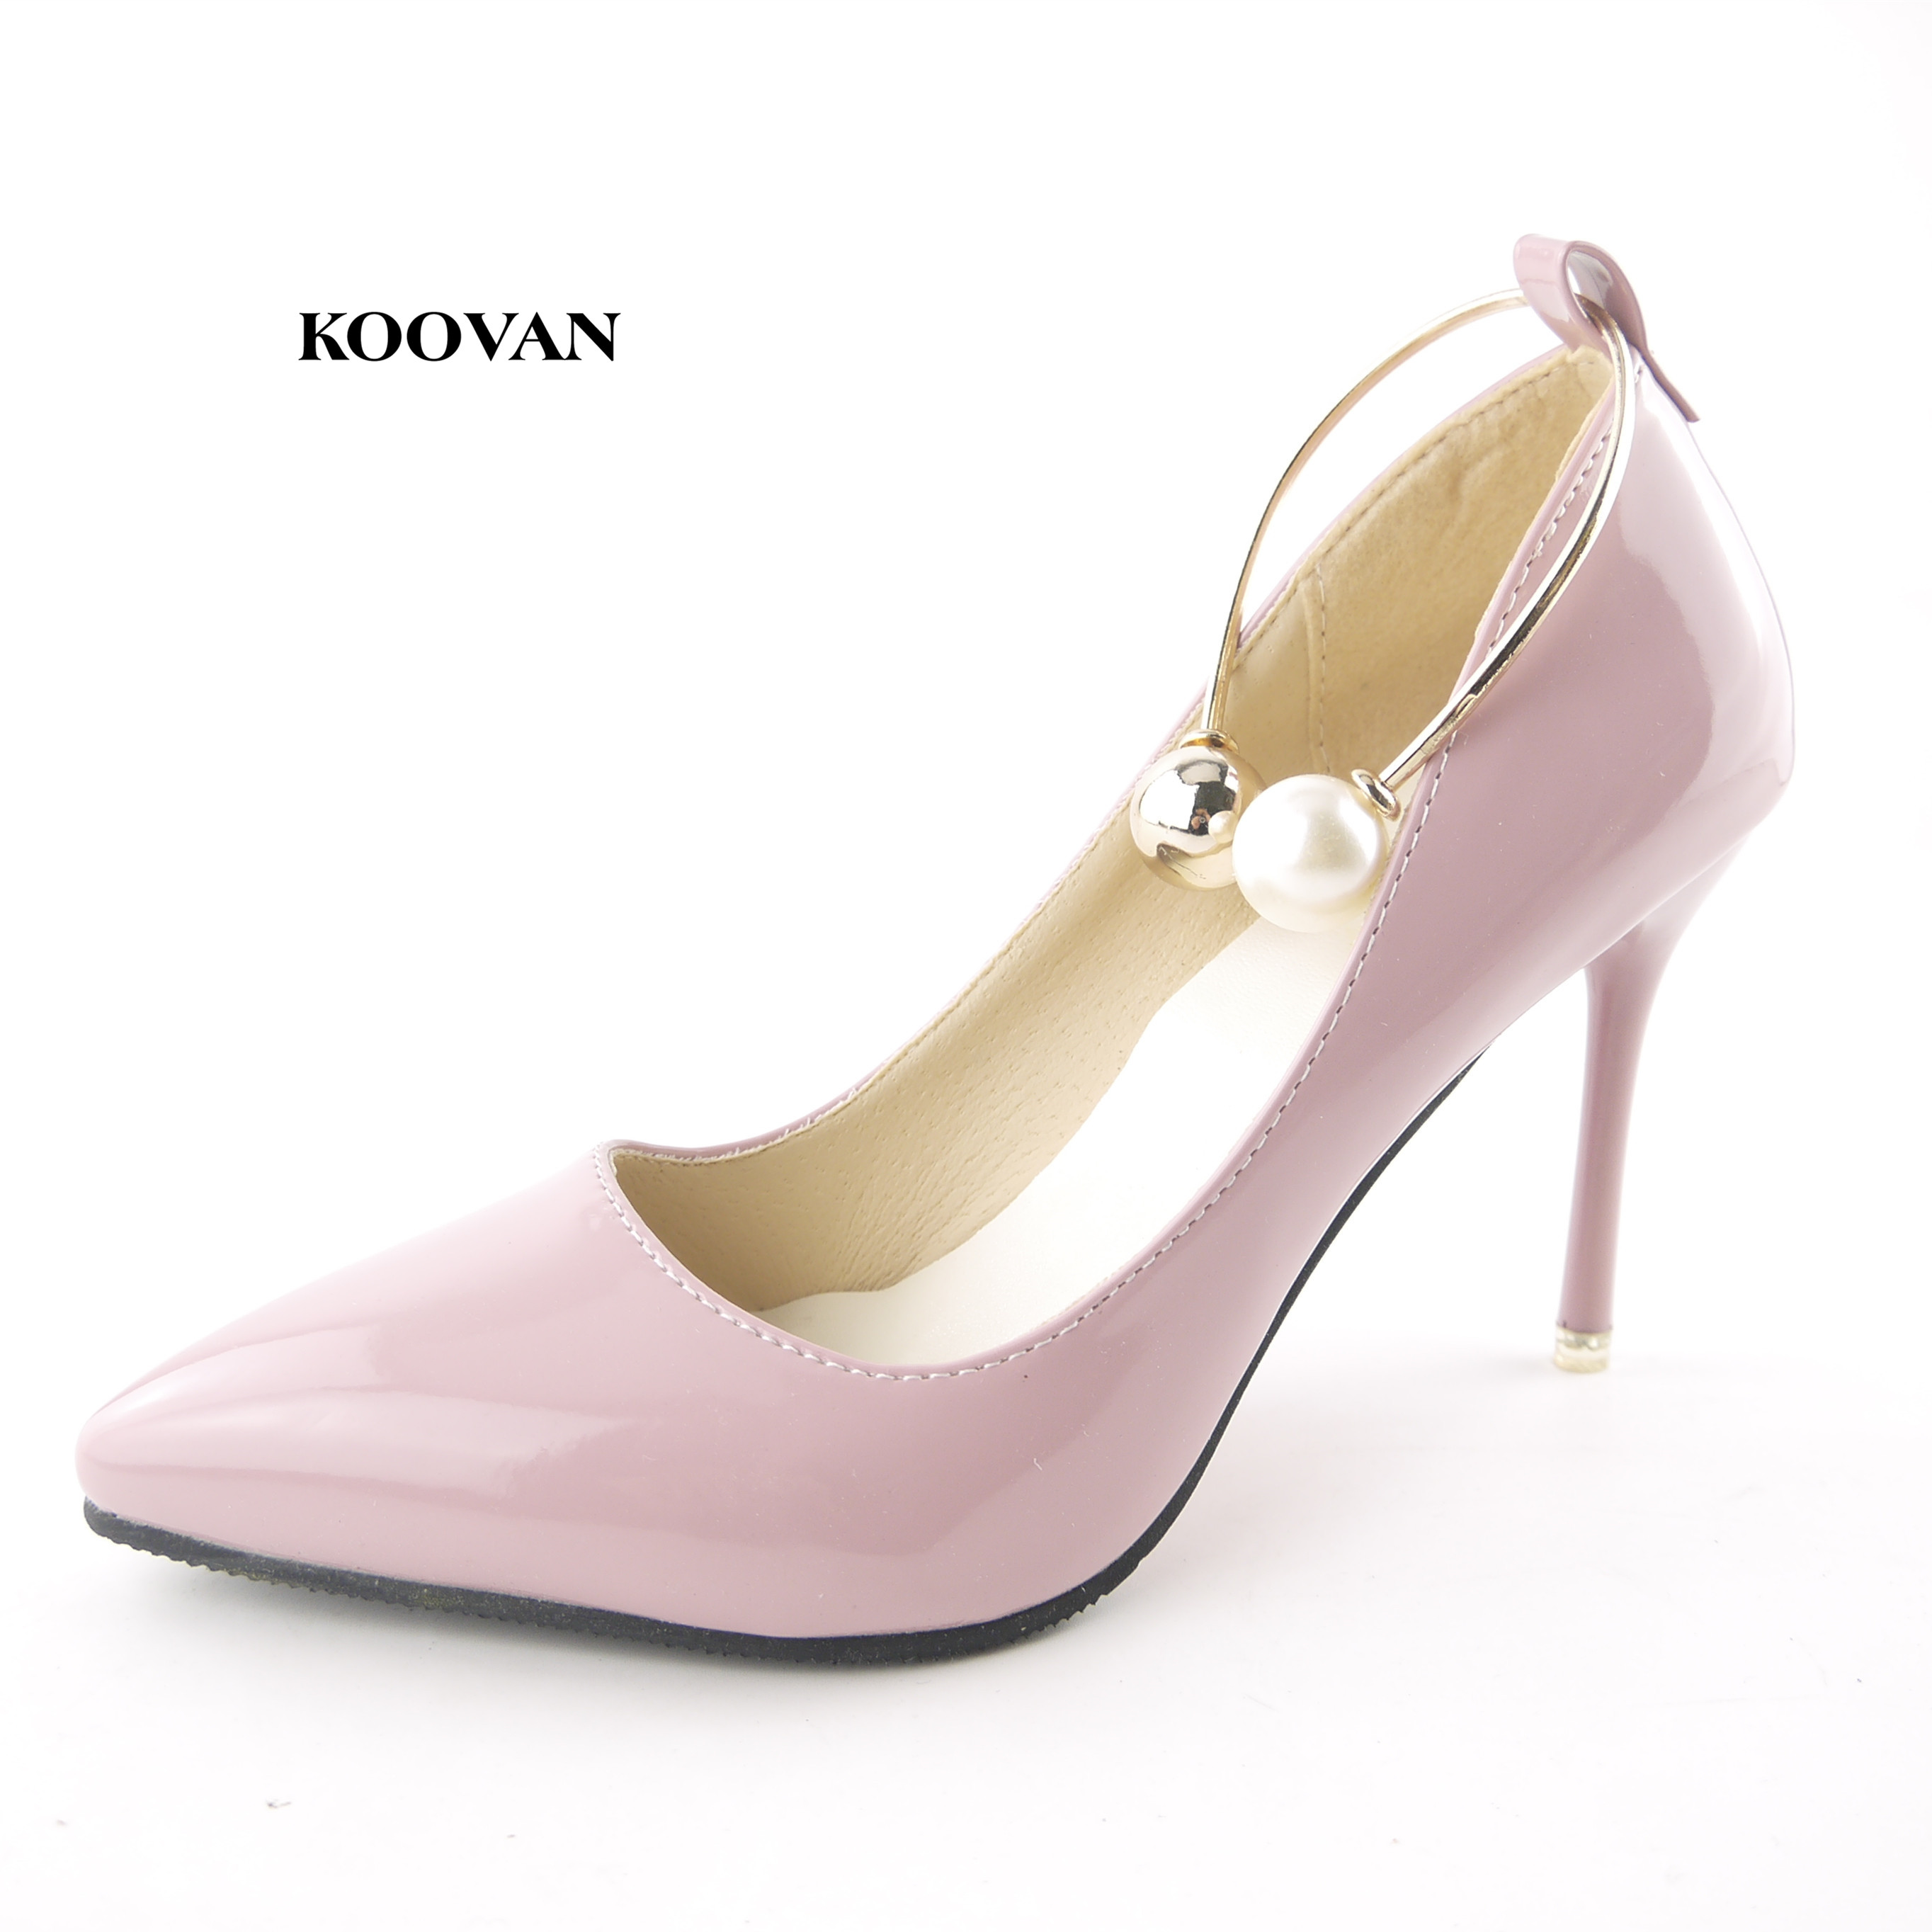 Koovan Women Pumps 2017 Spring New Shallow Mouth Pointed Shoes Heel Pearl Buckle With High-heeled Ladies Shoes koovan women pumps 2017 spring new shallow mouth pointed shoes heel pearl buckle with high heeled ladies shoes